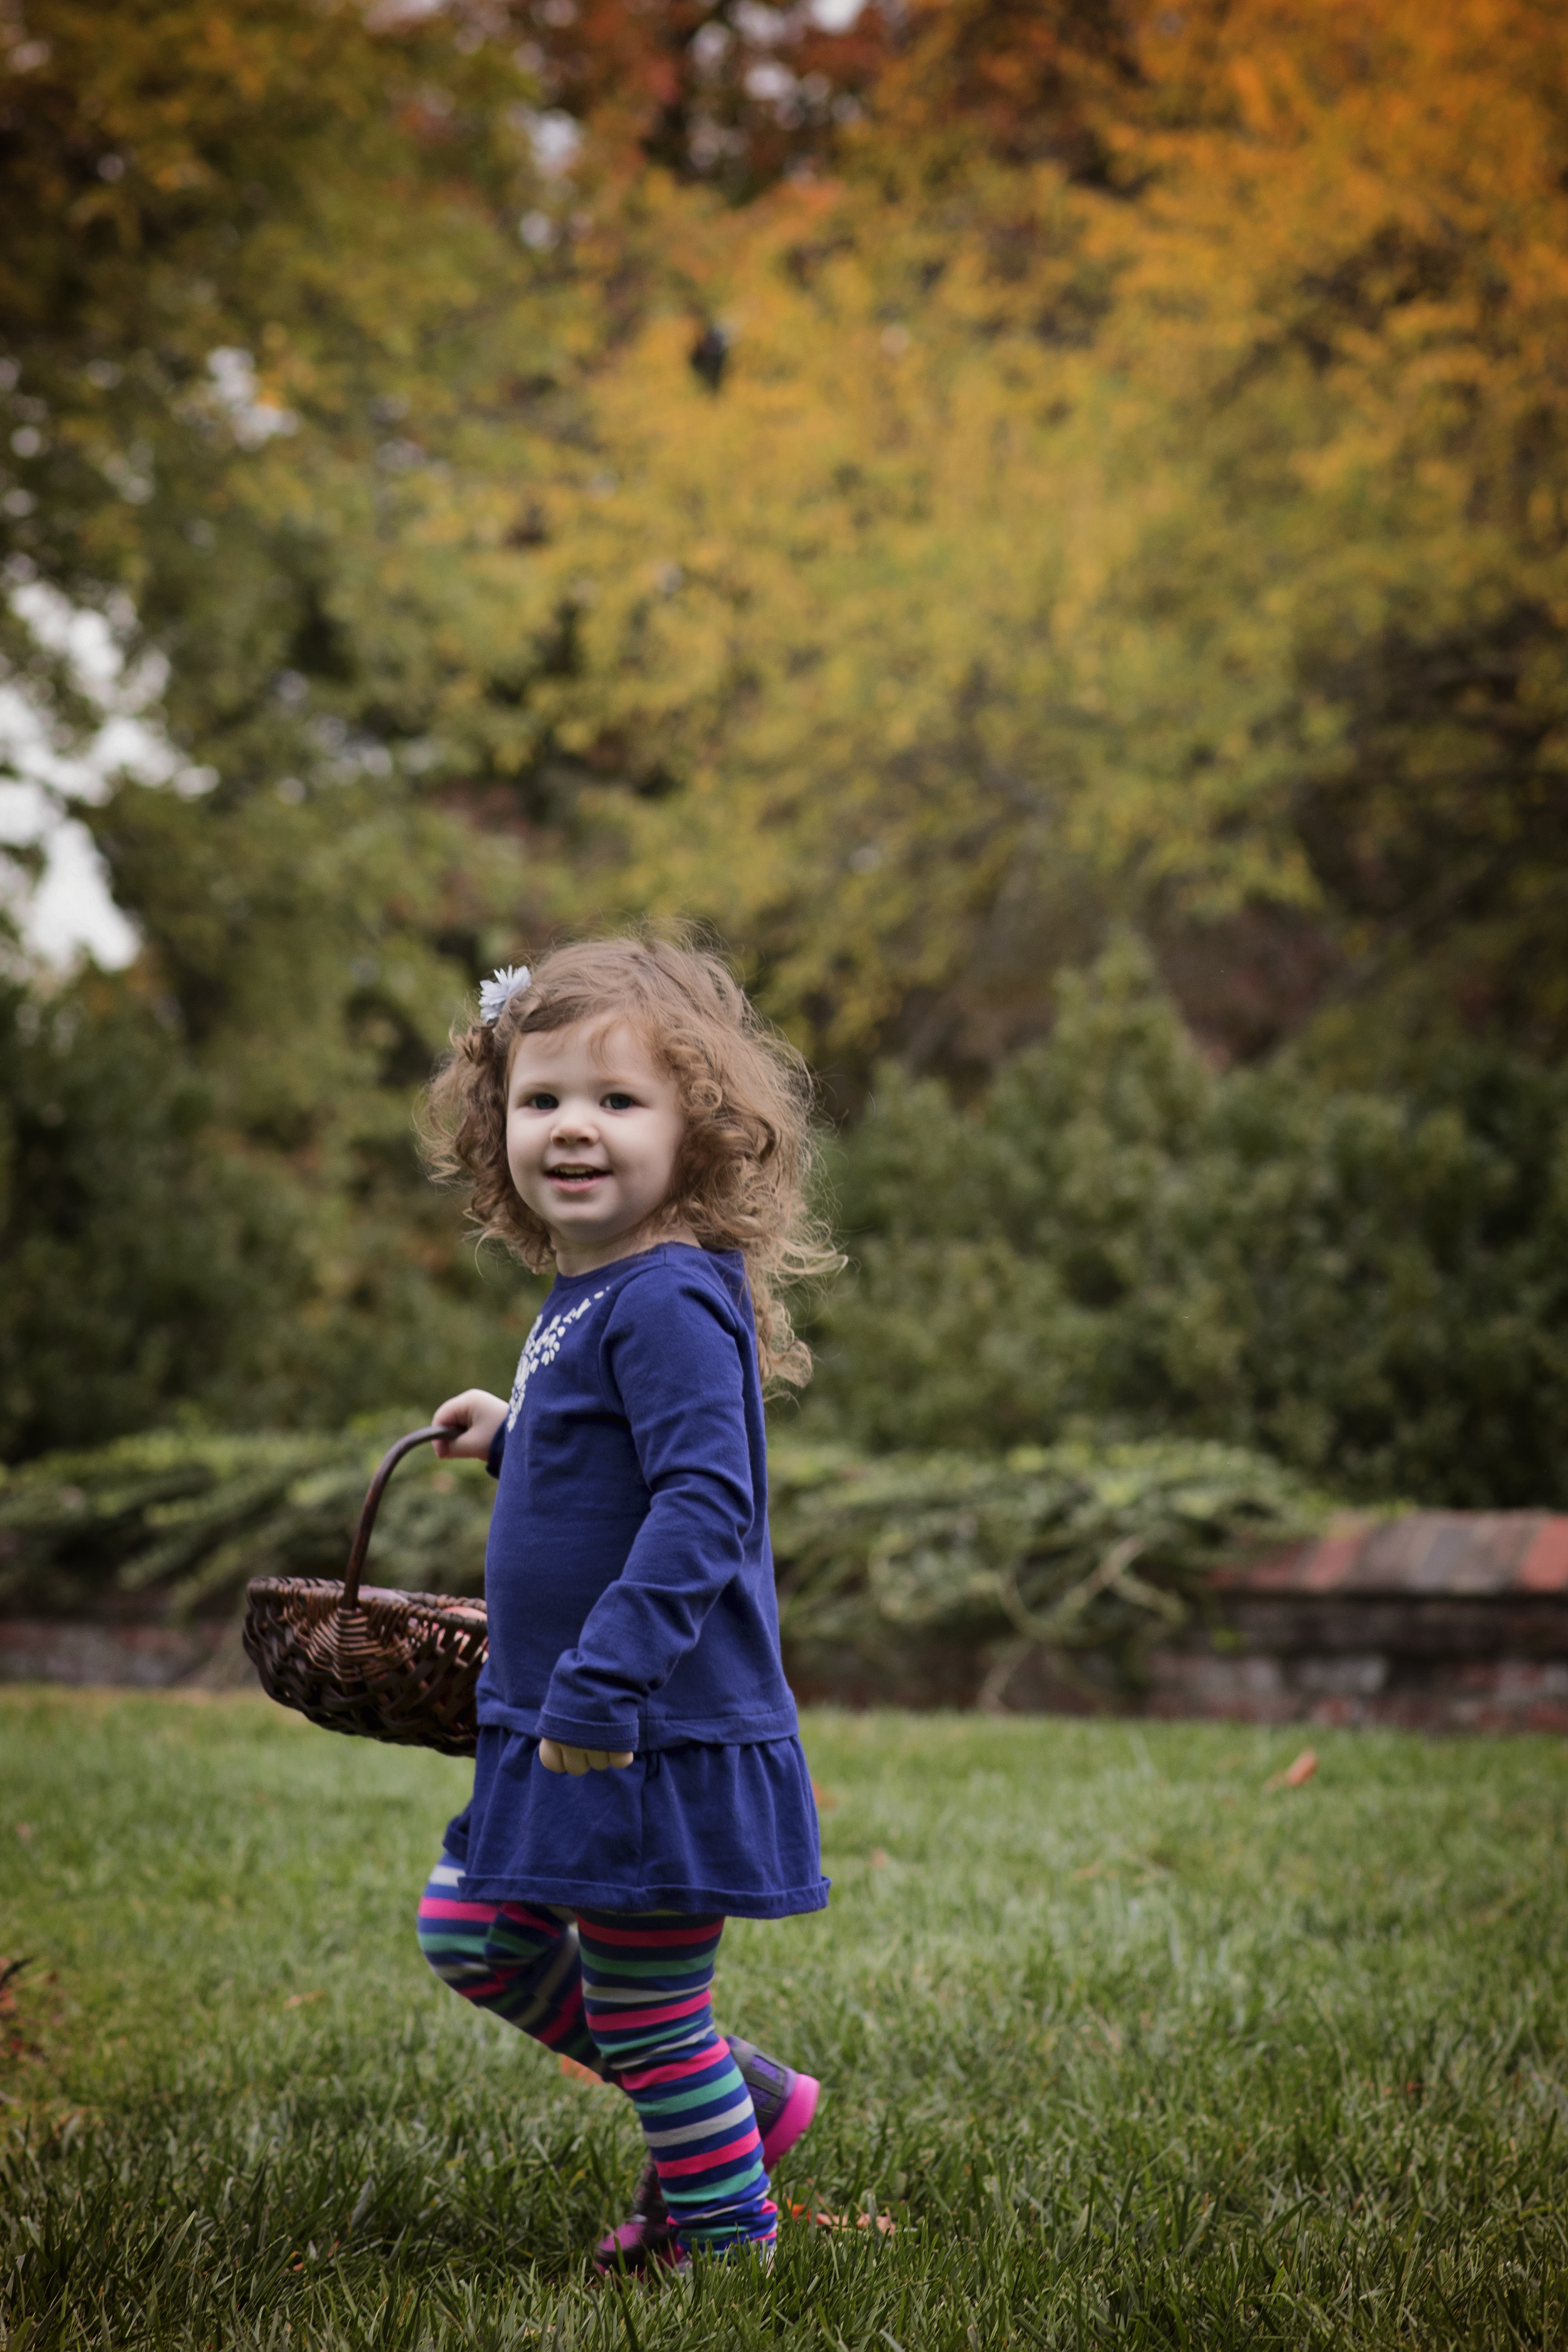 Little Girl with apples in a basket Childrens Photographer Kate Montaner